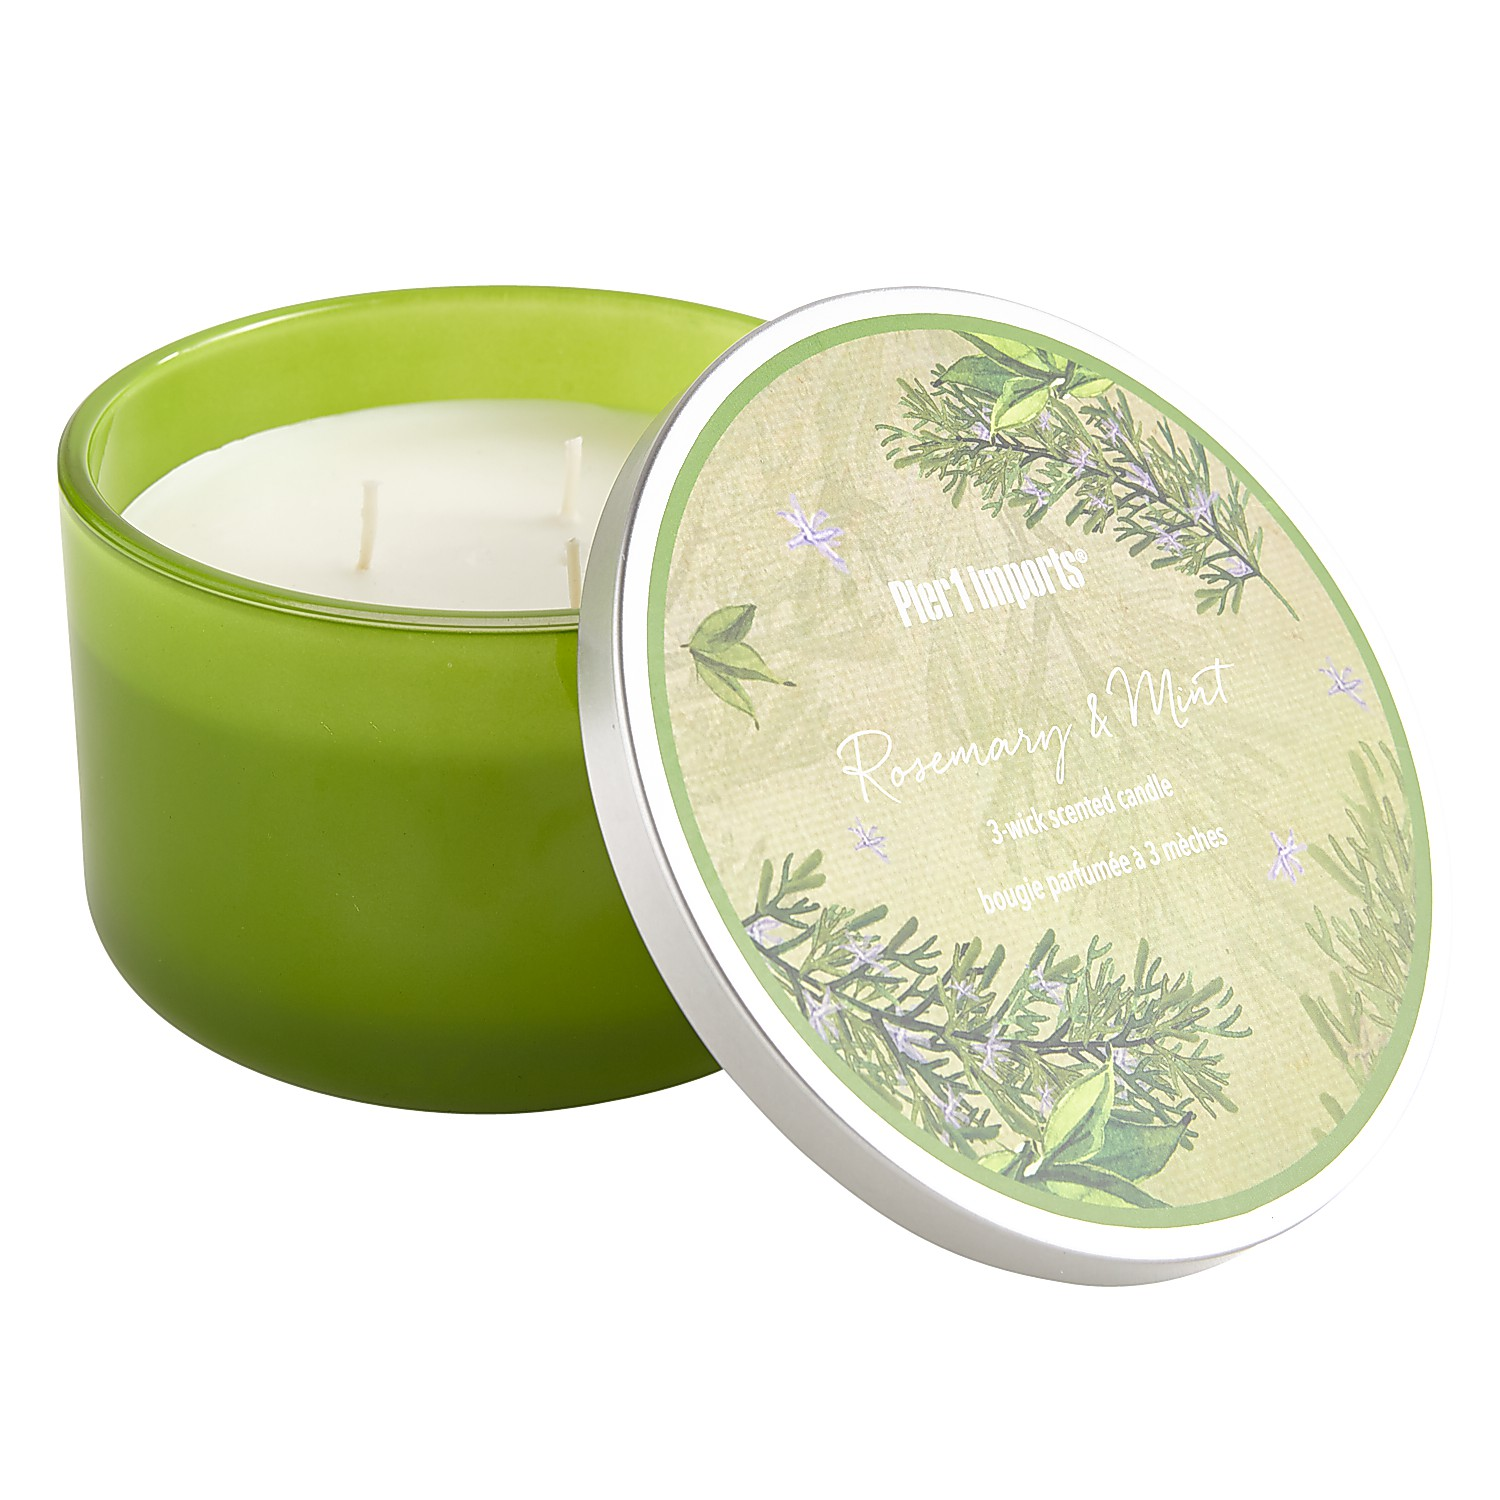 Rosemary & Mint Filled 3-Wick Candle